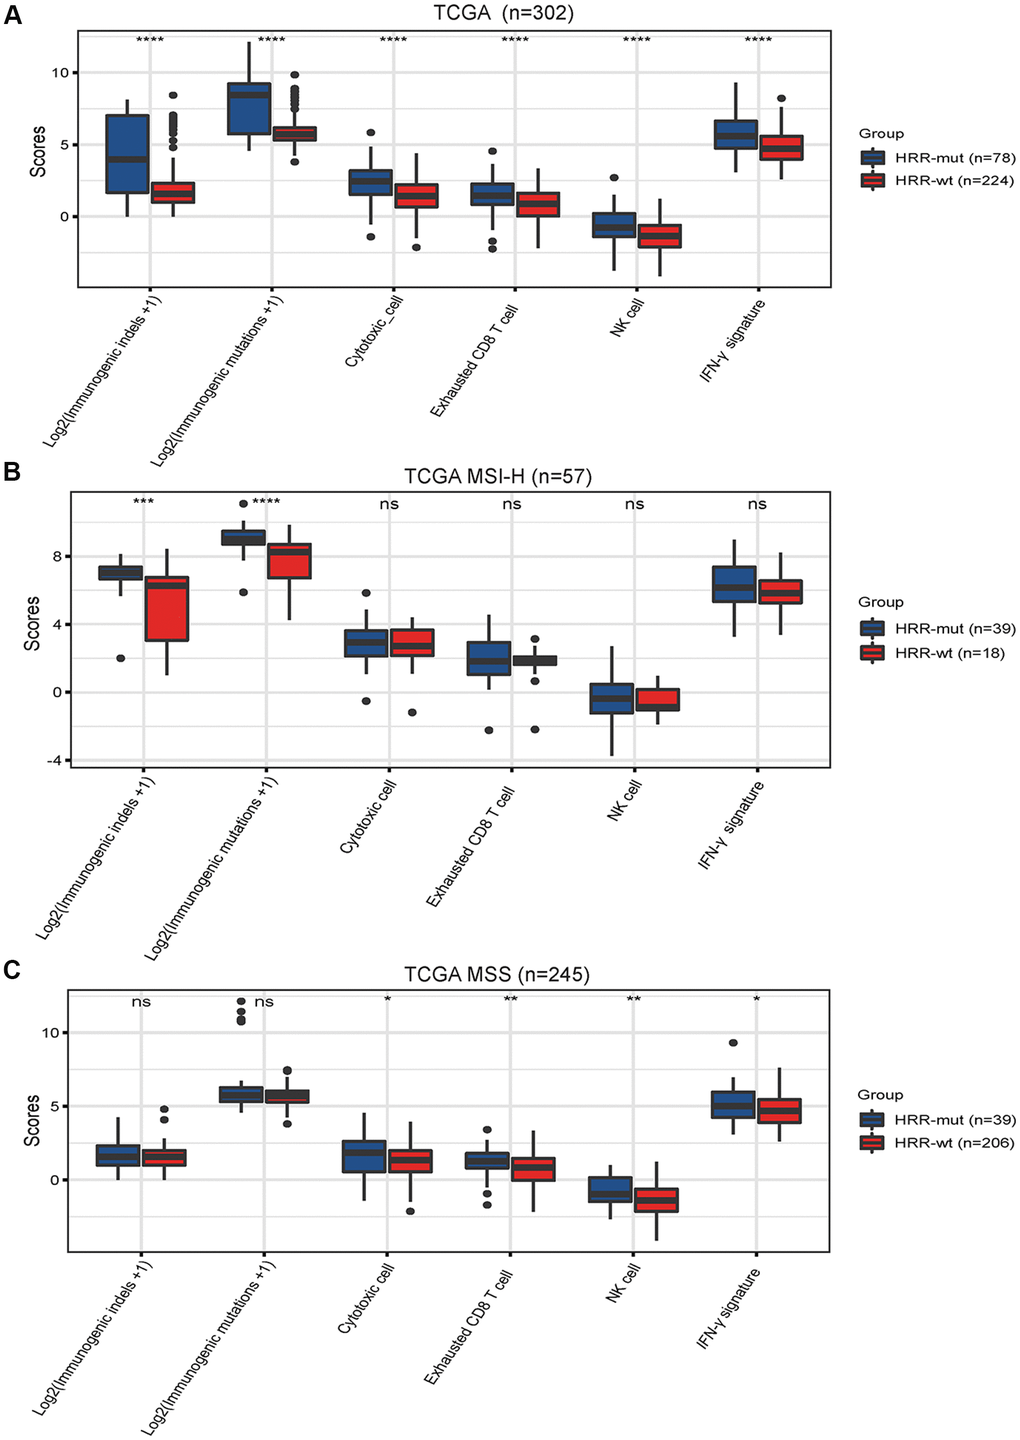 Mutations in HRR genes are associated with tumor immunogenicity and immune activity. Box plots showing the scores of immunogenic mutations, immunogenic indels, cytotoxic cells, exhausted CD8+ T cells, NK cells and IFN-γ signatures in the TCGA (A), TCGA MSI-H (B) AND TCGA MSS (C) cohorts. The scores for immunogenic mutations and indels are shown in log2-transformed format. P values were calculated with the Mann–Whitney U test; the box shows the upper and lower quartiles (* P P P P > 0.05).